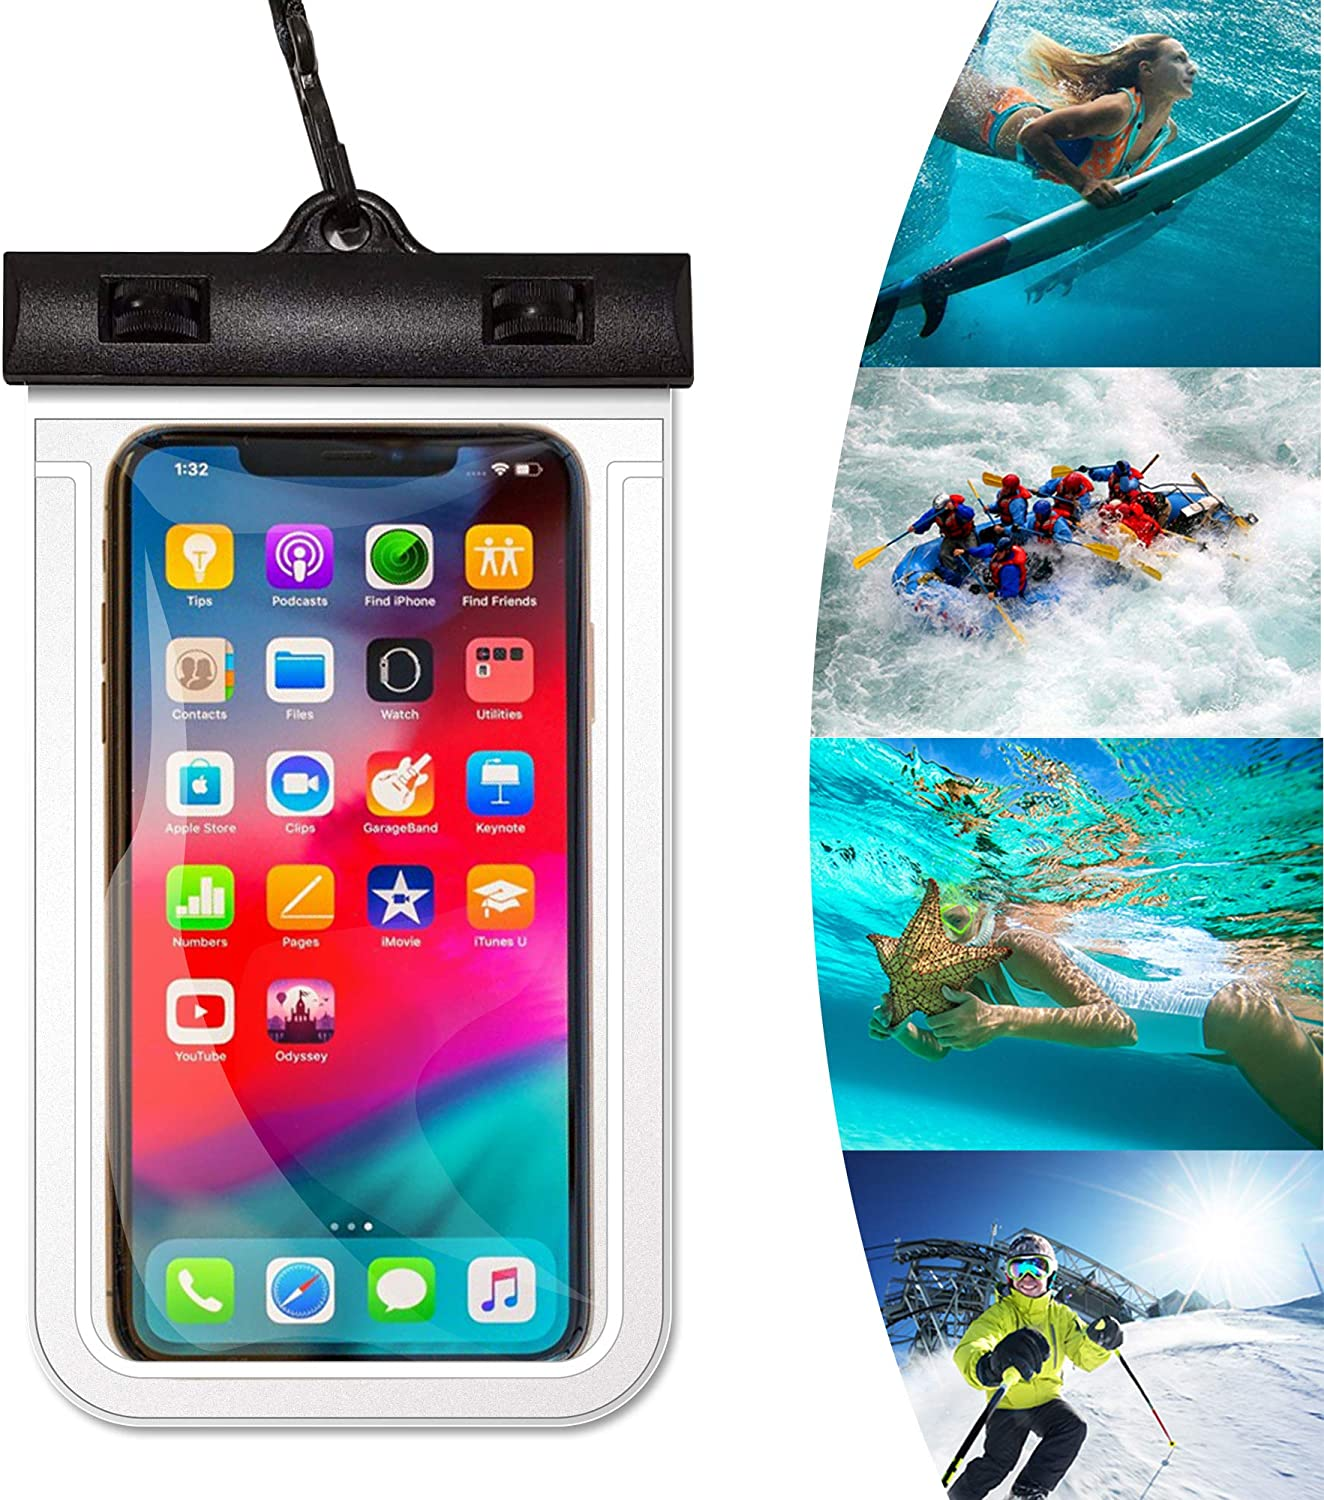 ESJFULI Waterproof Phone Pouch, Floating IPX8 Universal Waterproof Cell Phone Dry Bag case Up to 6.6 inch,ac at The Back of The Vomit Bag-Red